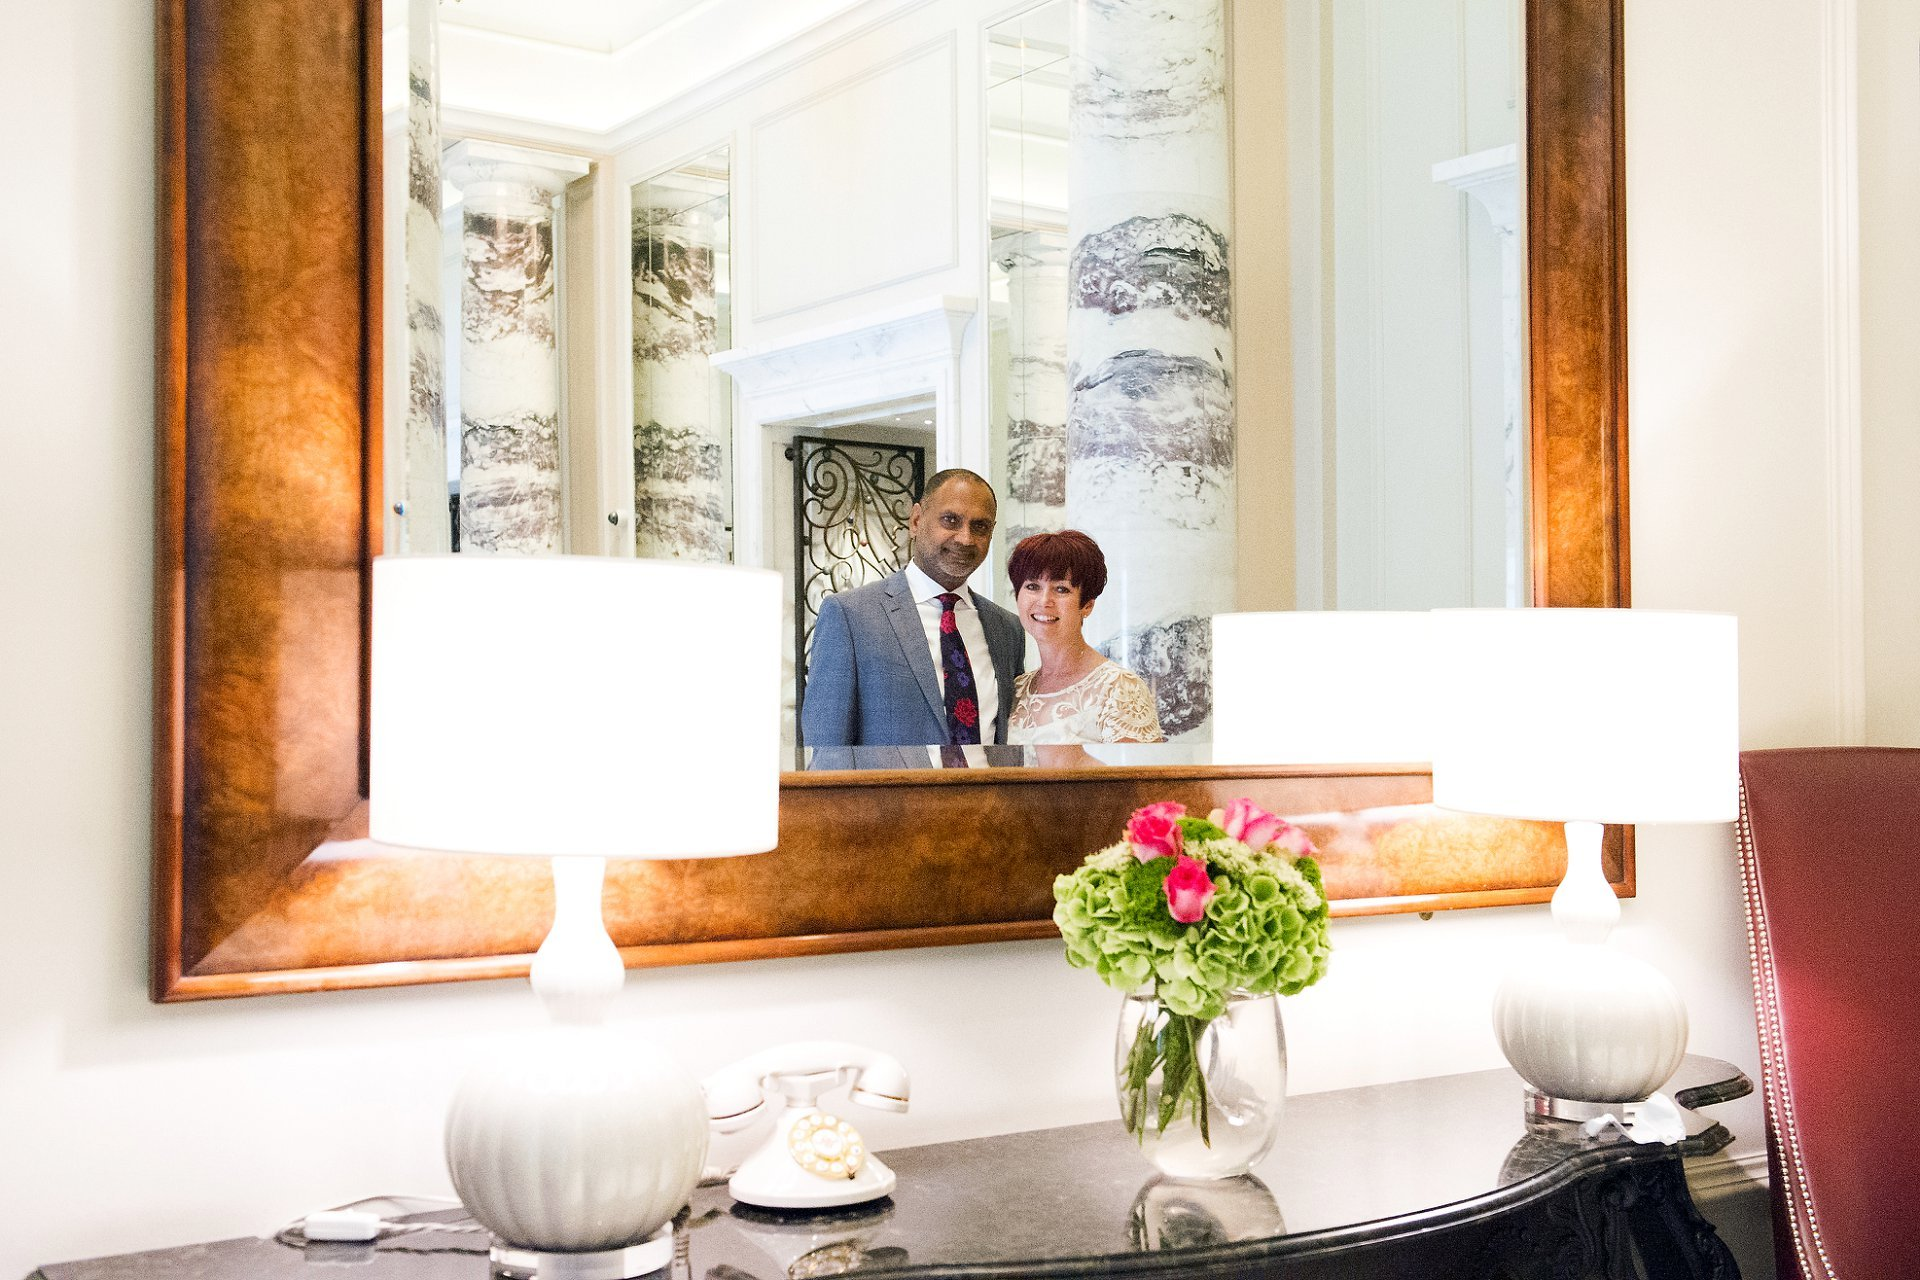 Langham wedding reception for this happy couple shown here after their civil wedding ceremony in the lobby of this famous 5 star London hotel, ideal for wedding celebrations large and small